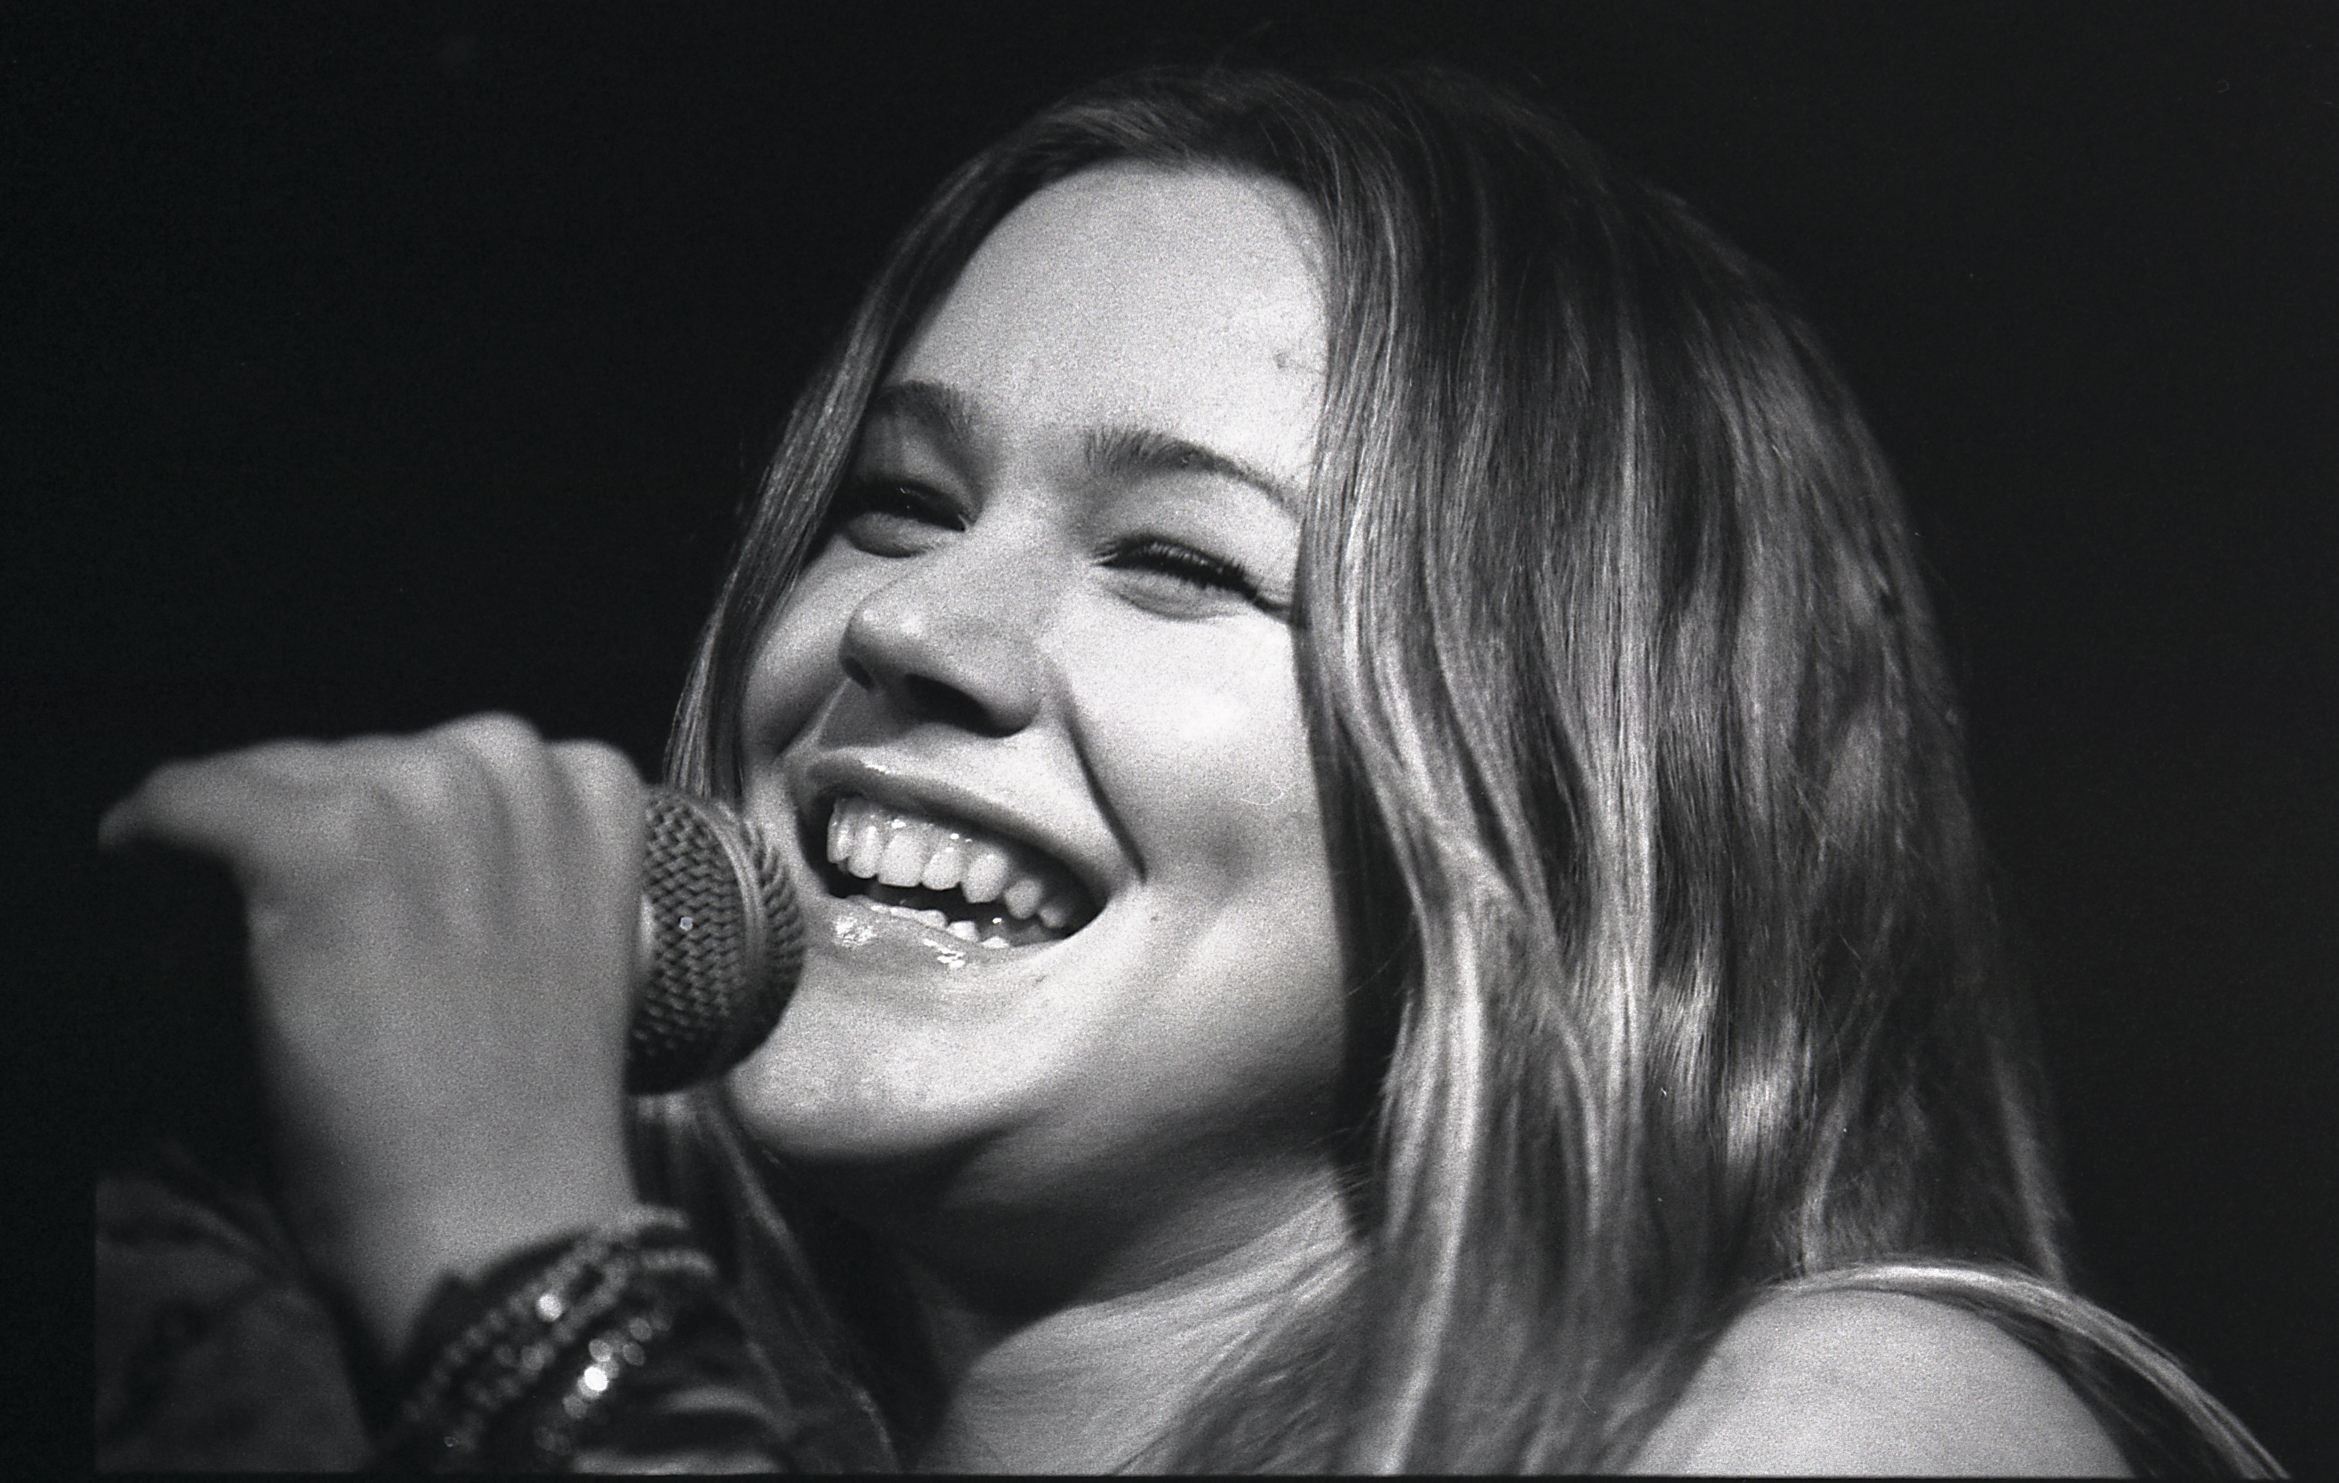 joss stone instagramjoss stone songs, joss stone water for your soul, joss stone tour, joss stone you had me, joss stone youtube, joss stone love me, joss stone right to be wrong, joss stone spoiled, joss stone fell in love with a boy, joss stone net worth, joss stone 2015, joss stone new album, joss stone stuck on you, joss stone albums, joss stone free me, joss stone lyrics, joss stone wiki, joss stone stuck on you lyrics, joss stone instagram